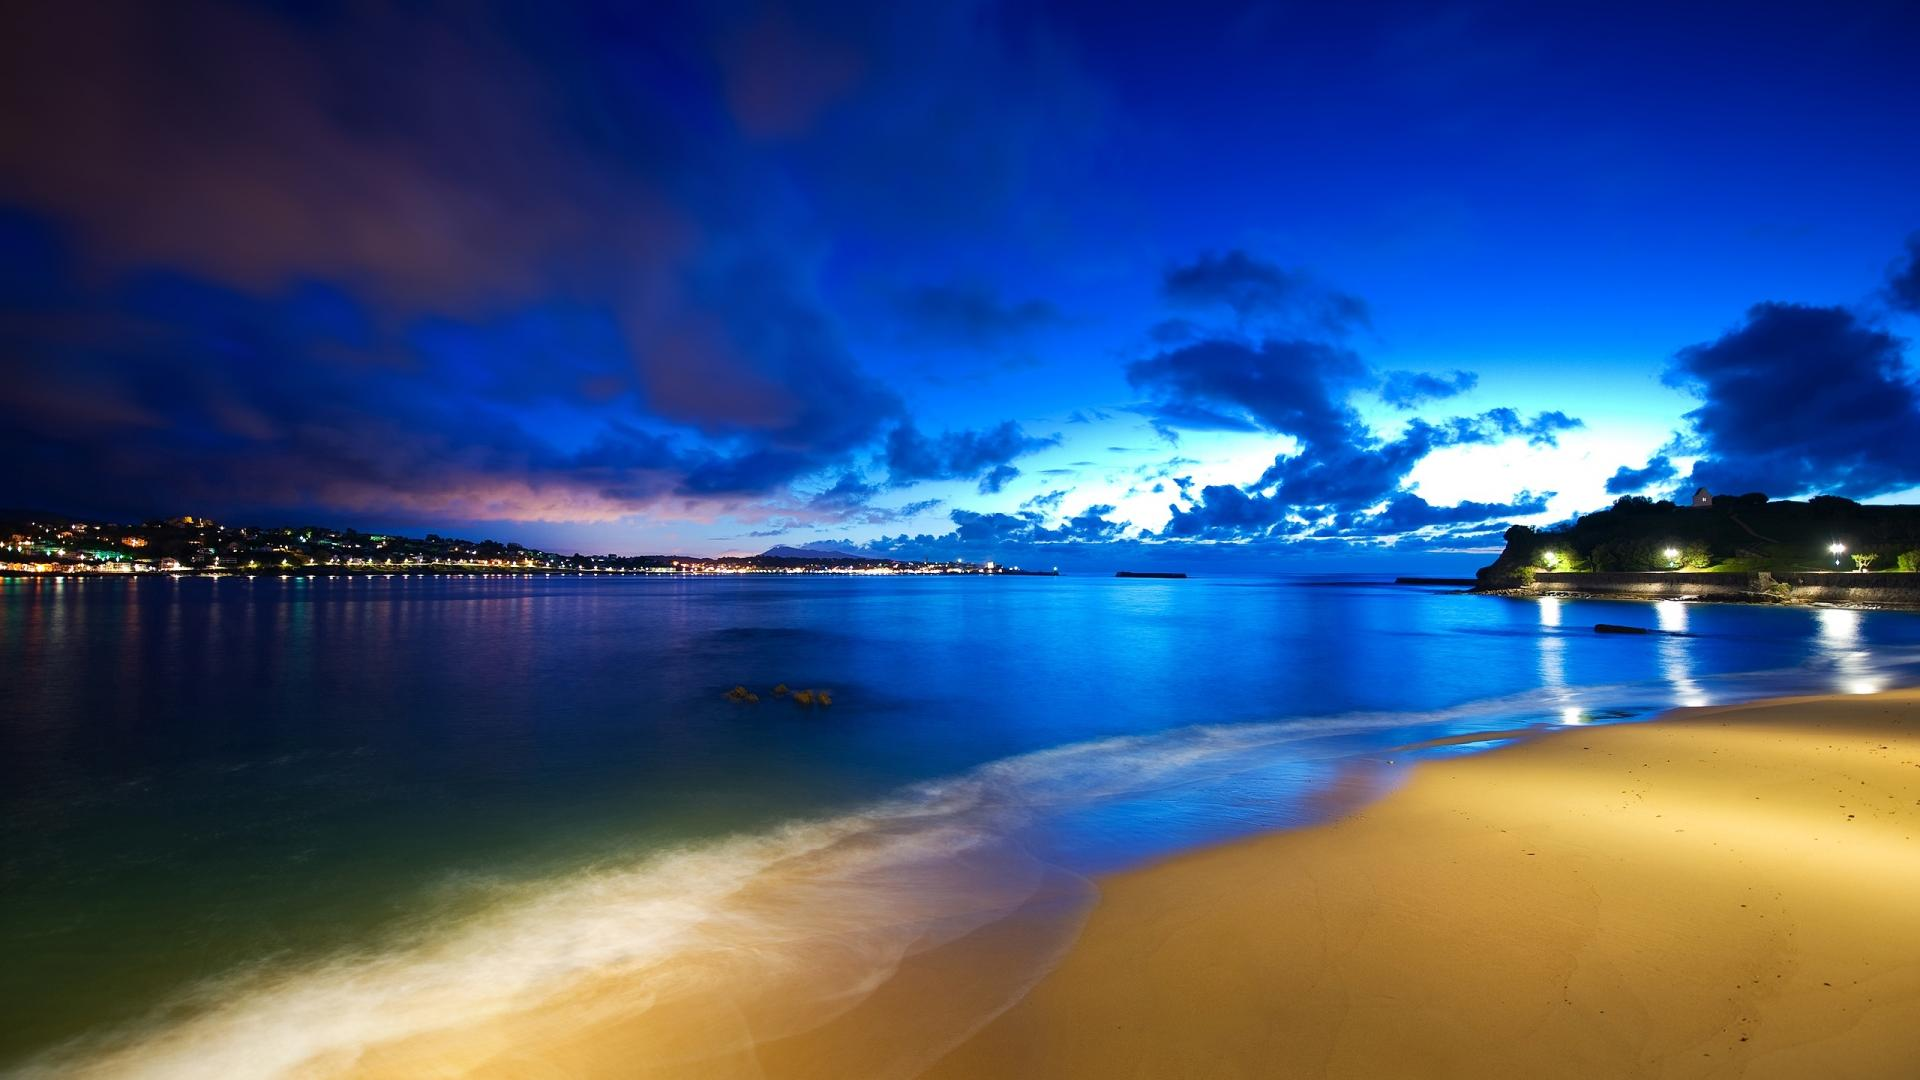 Beach Wallpapers at Night HD Wallpaper of Beach 1920x1080